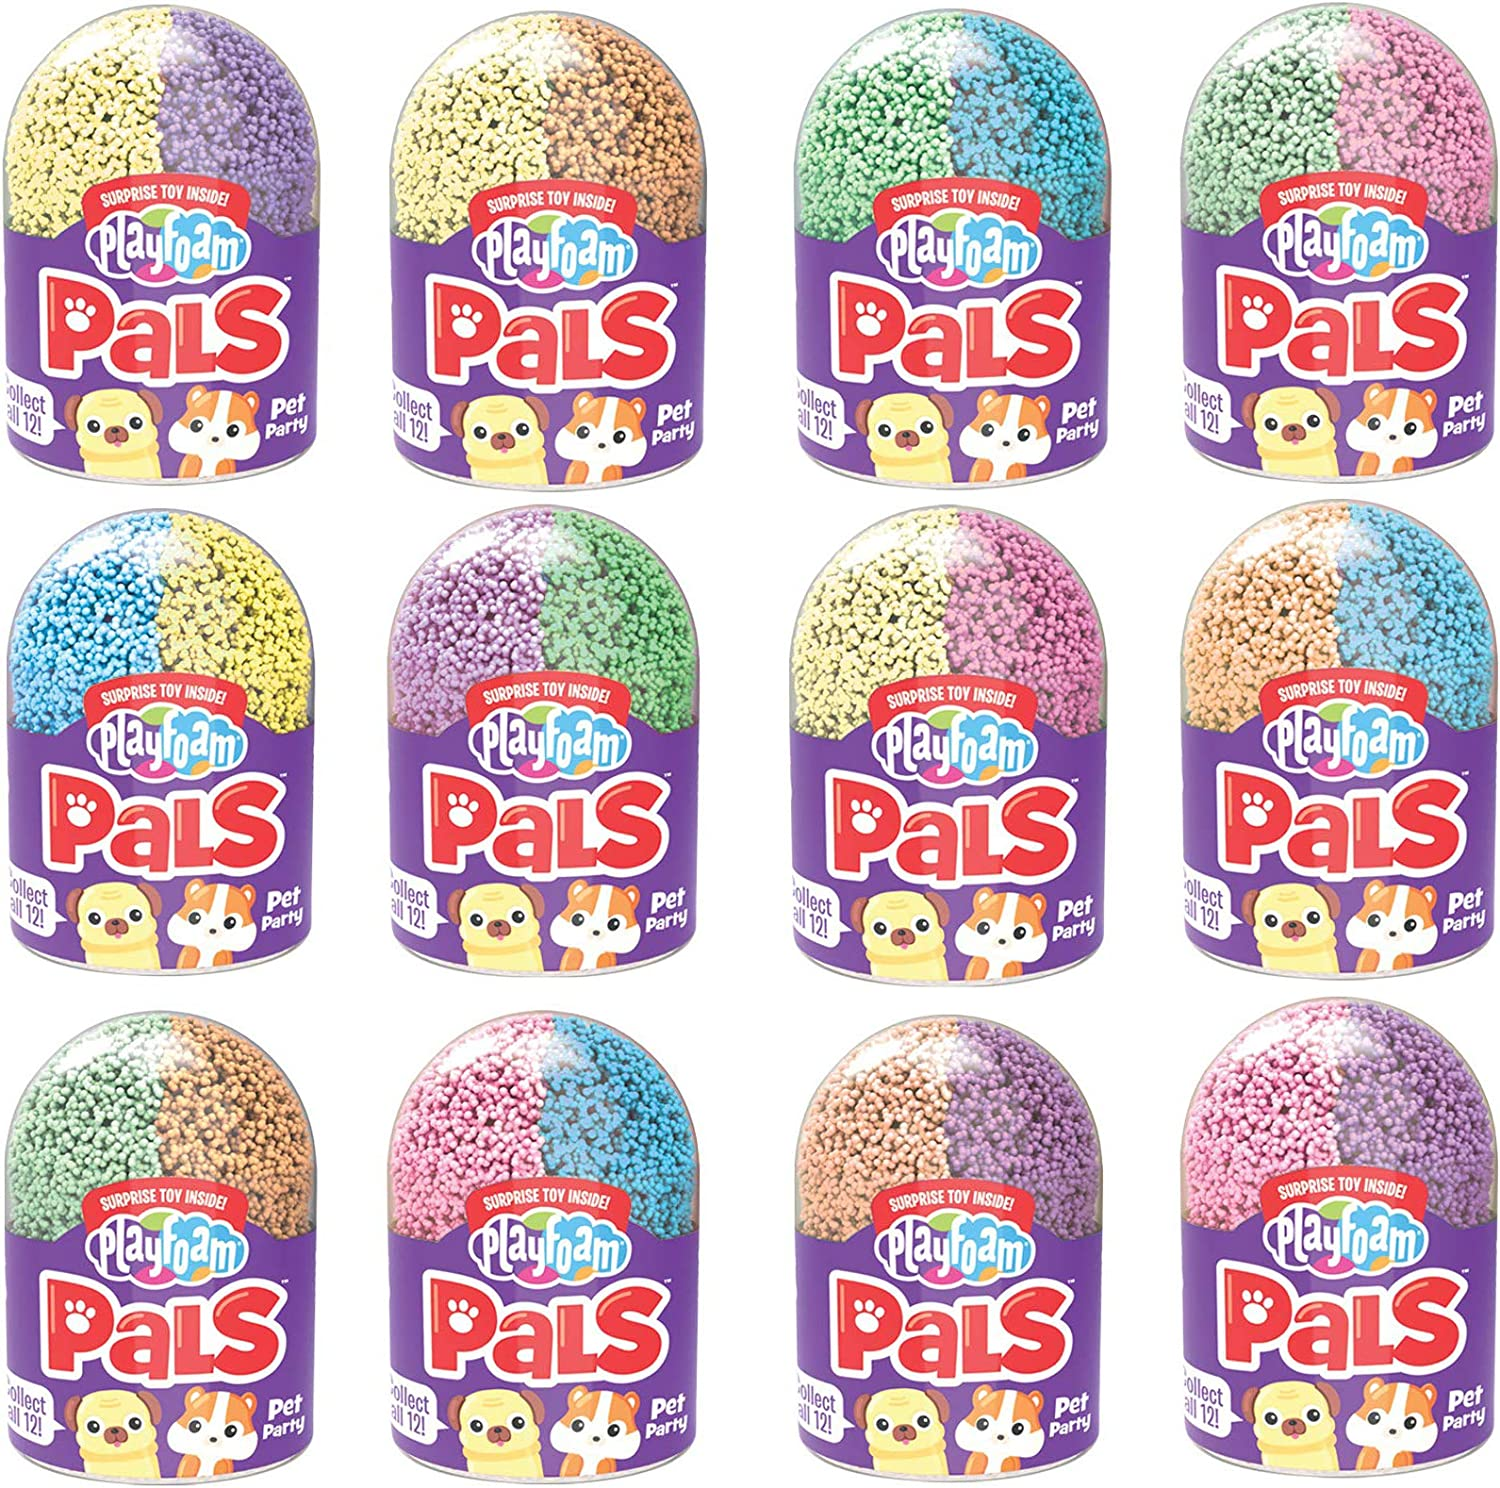 Never Dries Out Sensory Perfect for Ages 5+ Non-Toxic Shaping Fun Surprise Collectible Toy Arts /& Crafts For Kids Educational Insights Playfoam Pals Pet Party 2-Pack